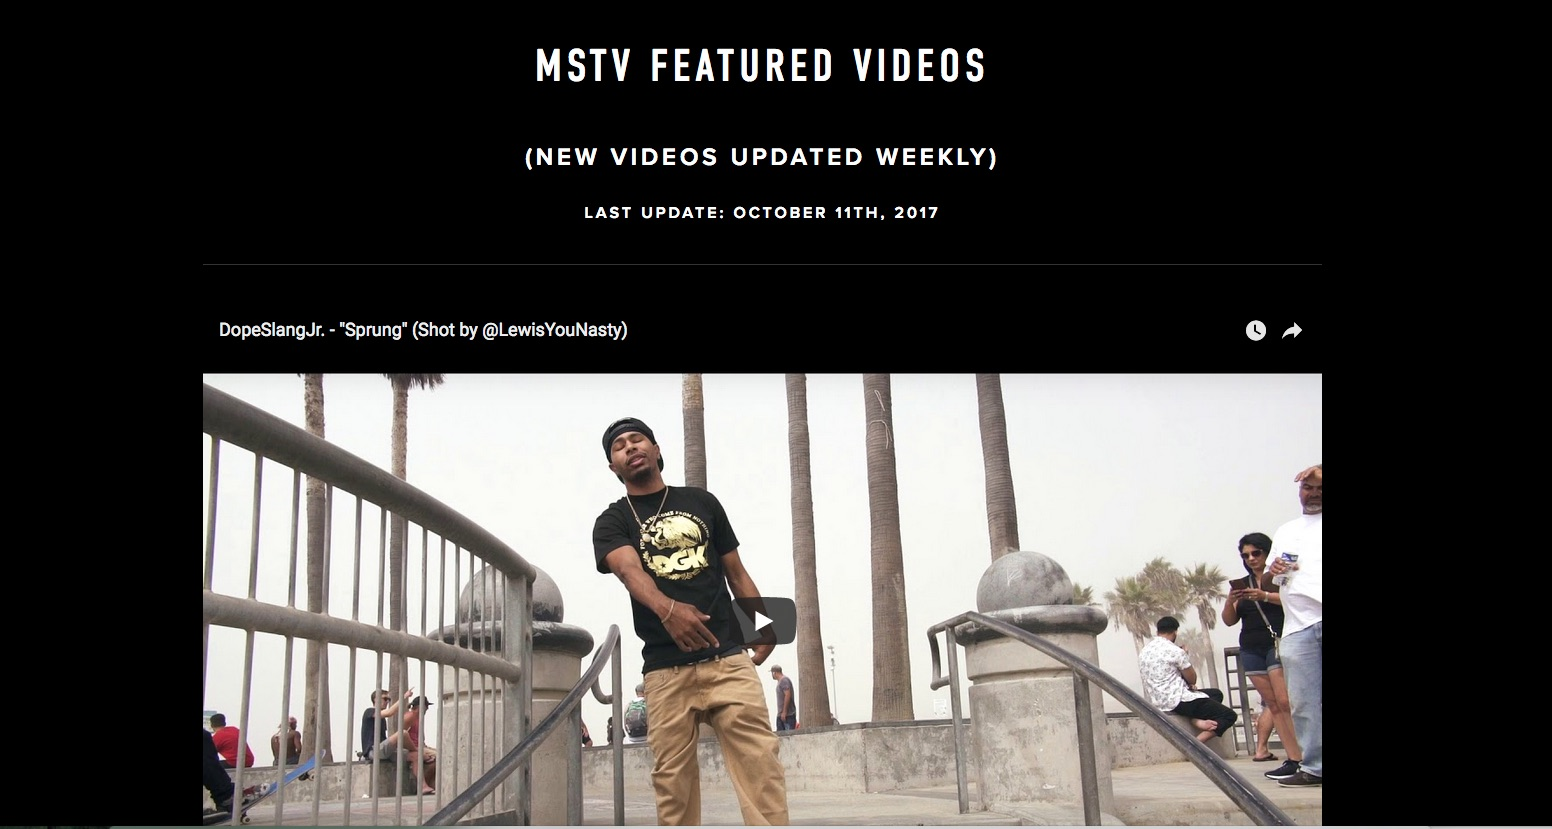 Post your video on MusicspeaksTV.com TOP banner for a week + PROMO